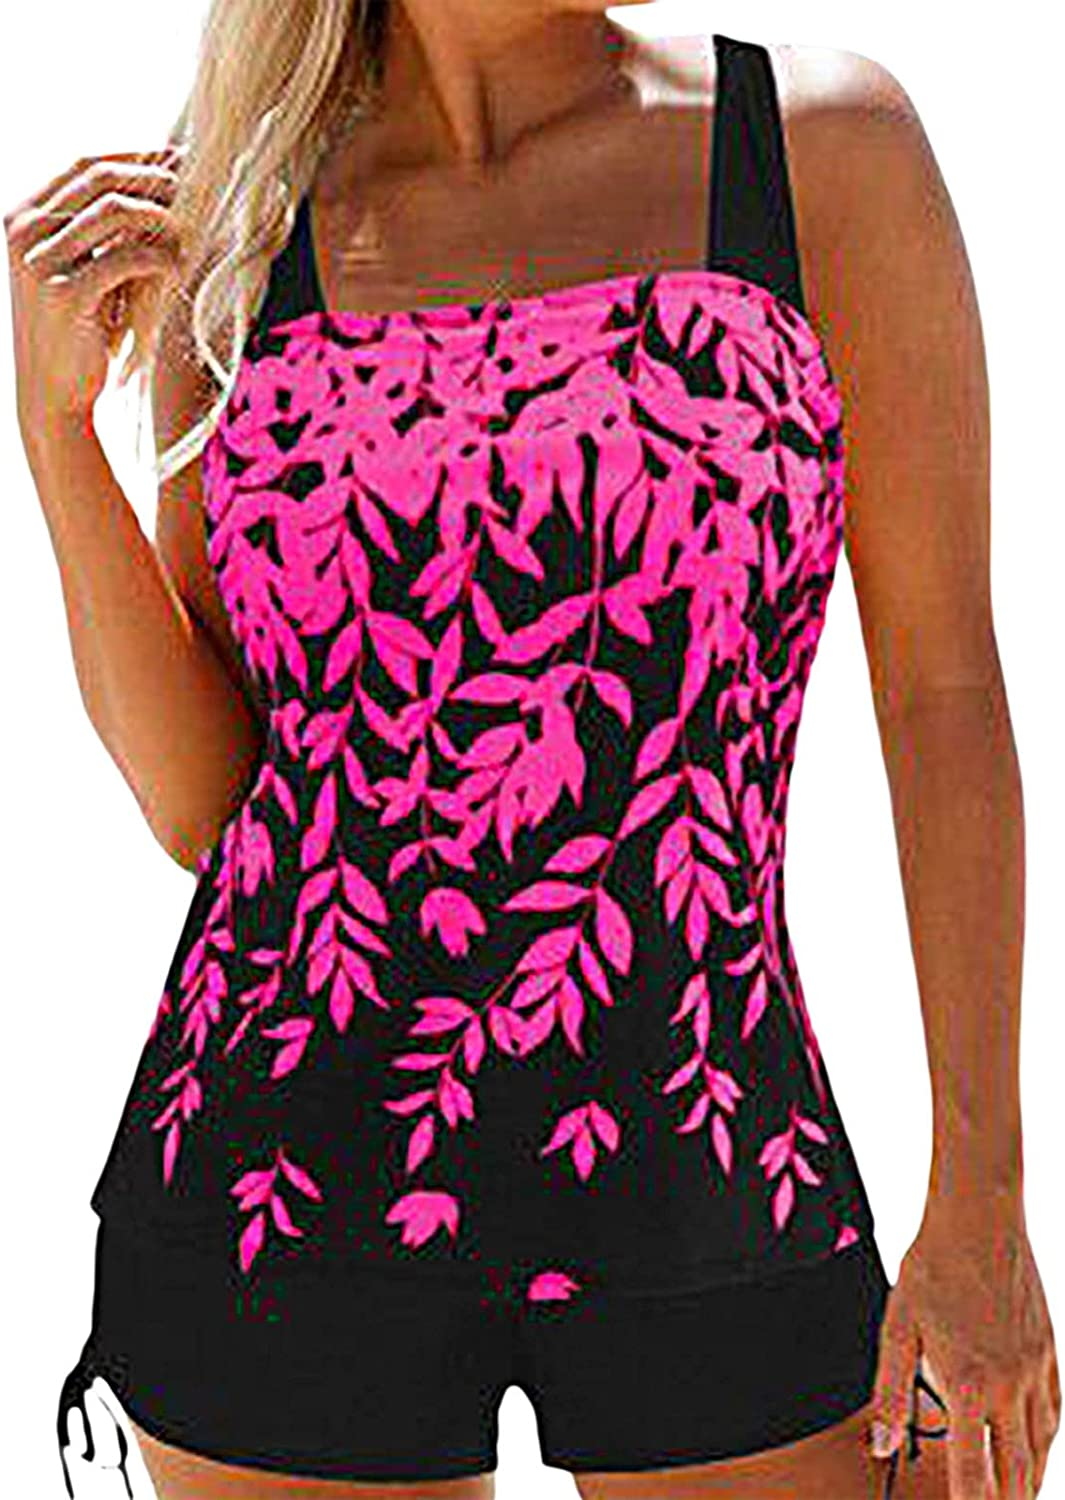 Tankini Swimsuits for Women Two Piece Tops Bathing Suits Tummy Control Swimwear Plus Size Swimsuits